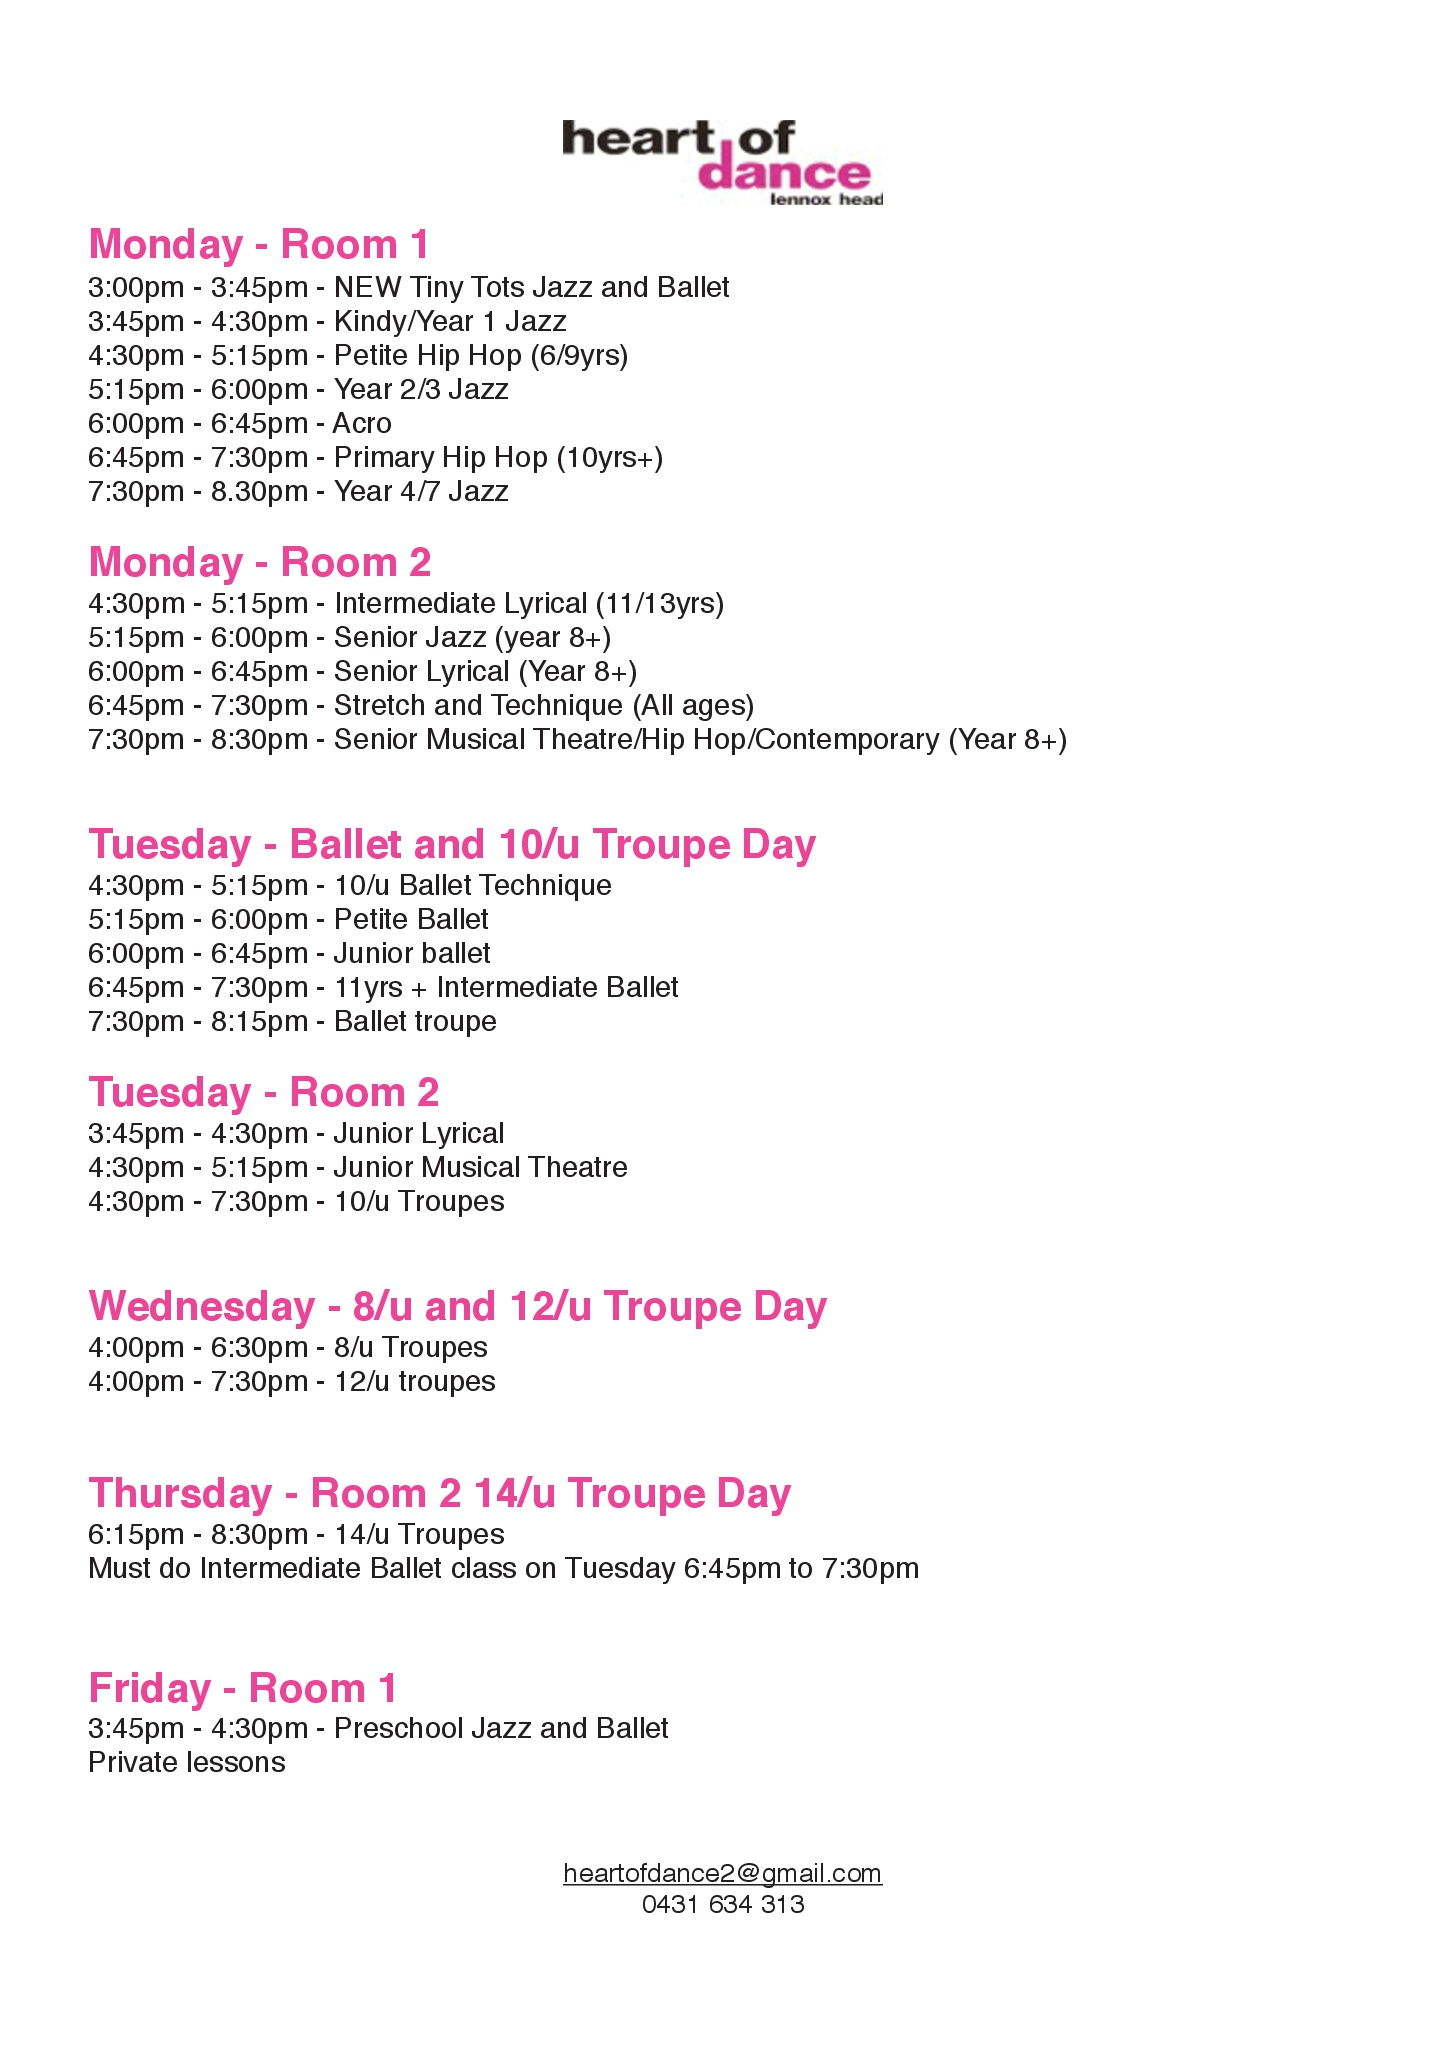 Heart of Dance 2018 Timetable